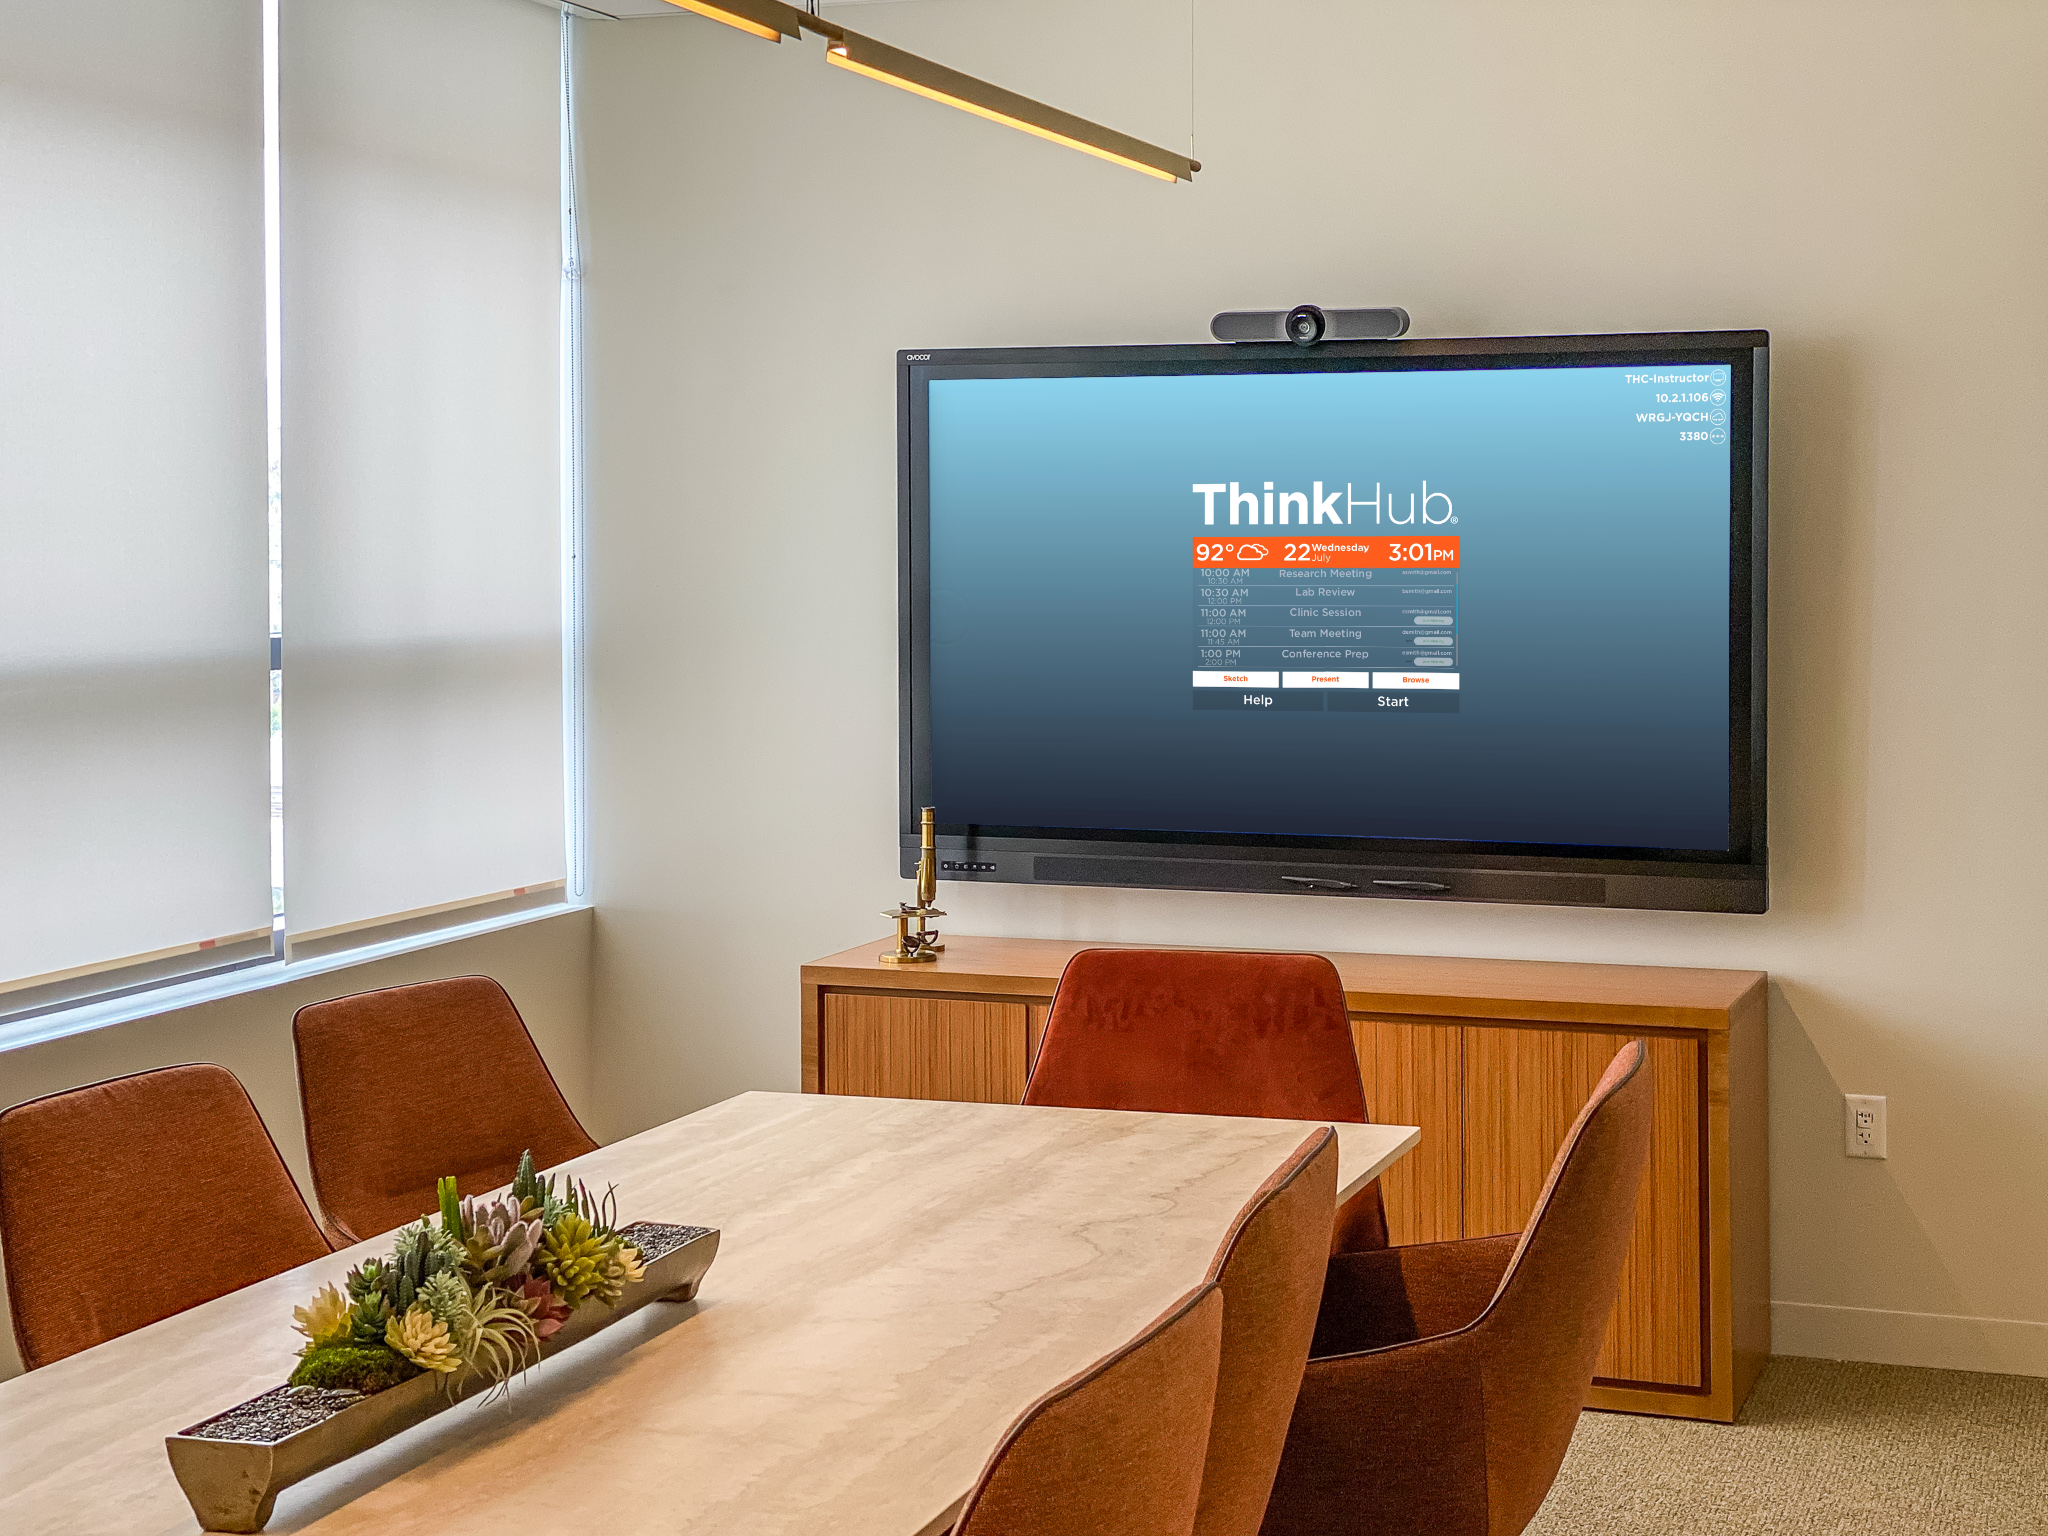 T1V-ThinkHub-USC-Ellison-Institute-Meeting-Room-1-ThinkHub-Collaboration-Interactive-Software-CA-2020